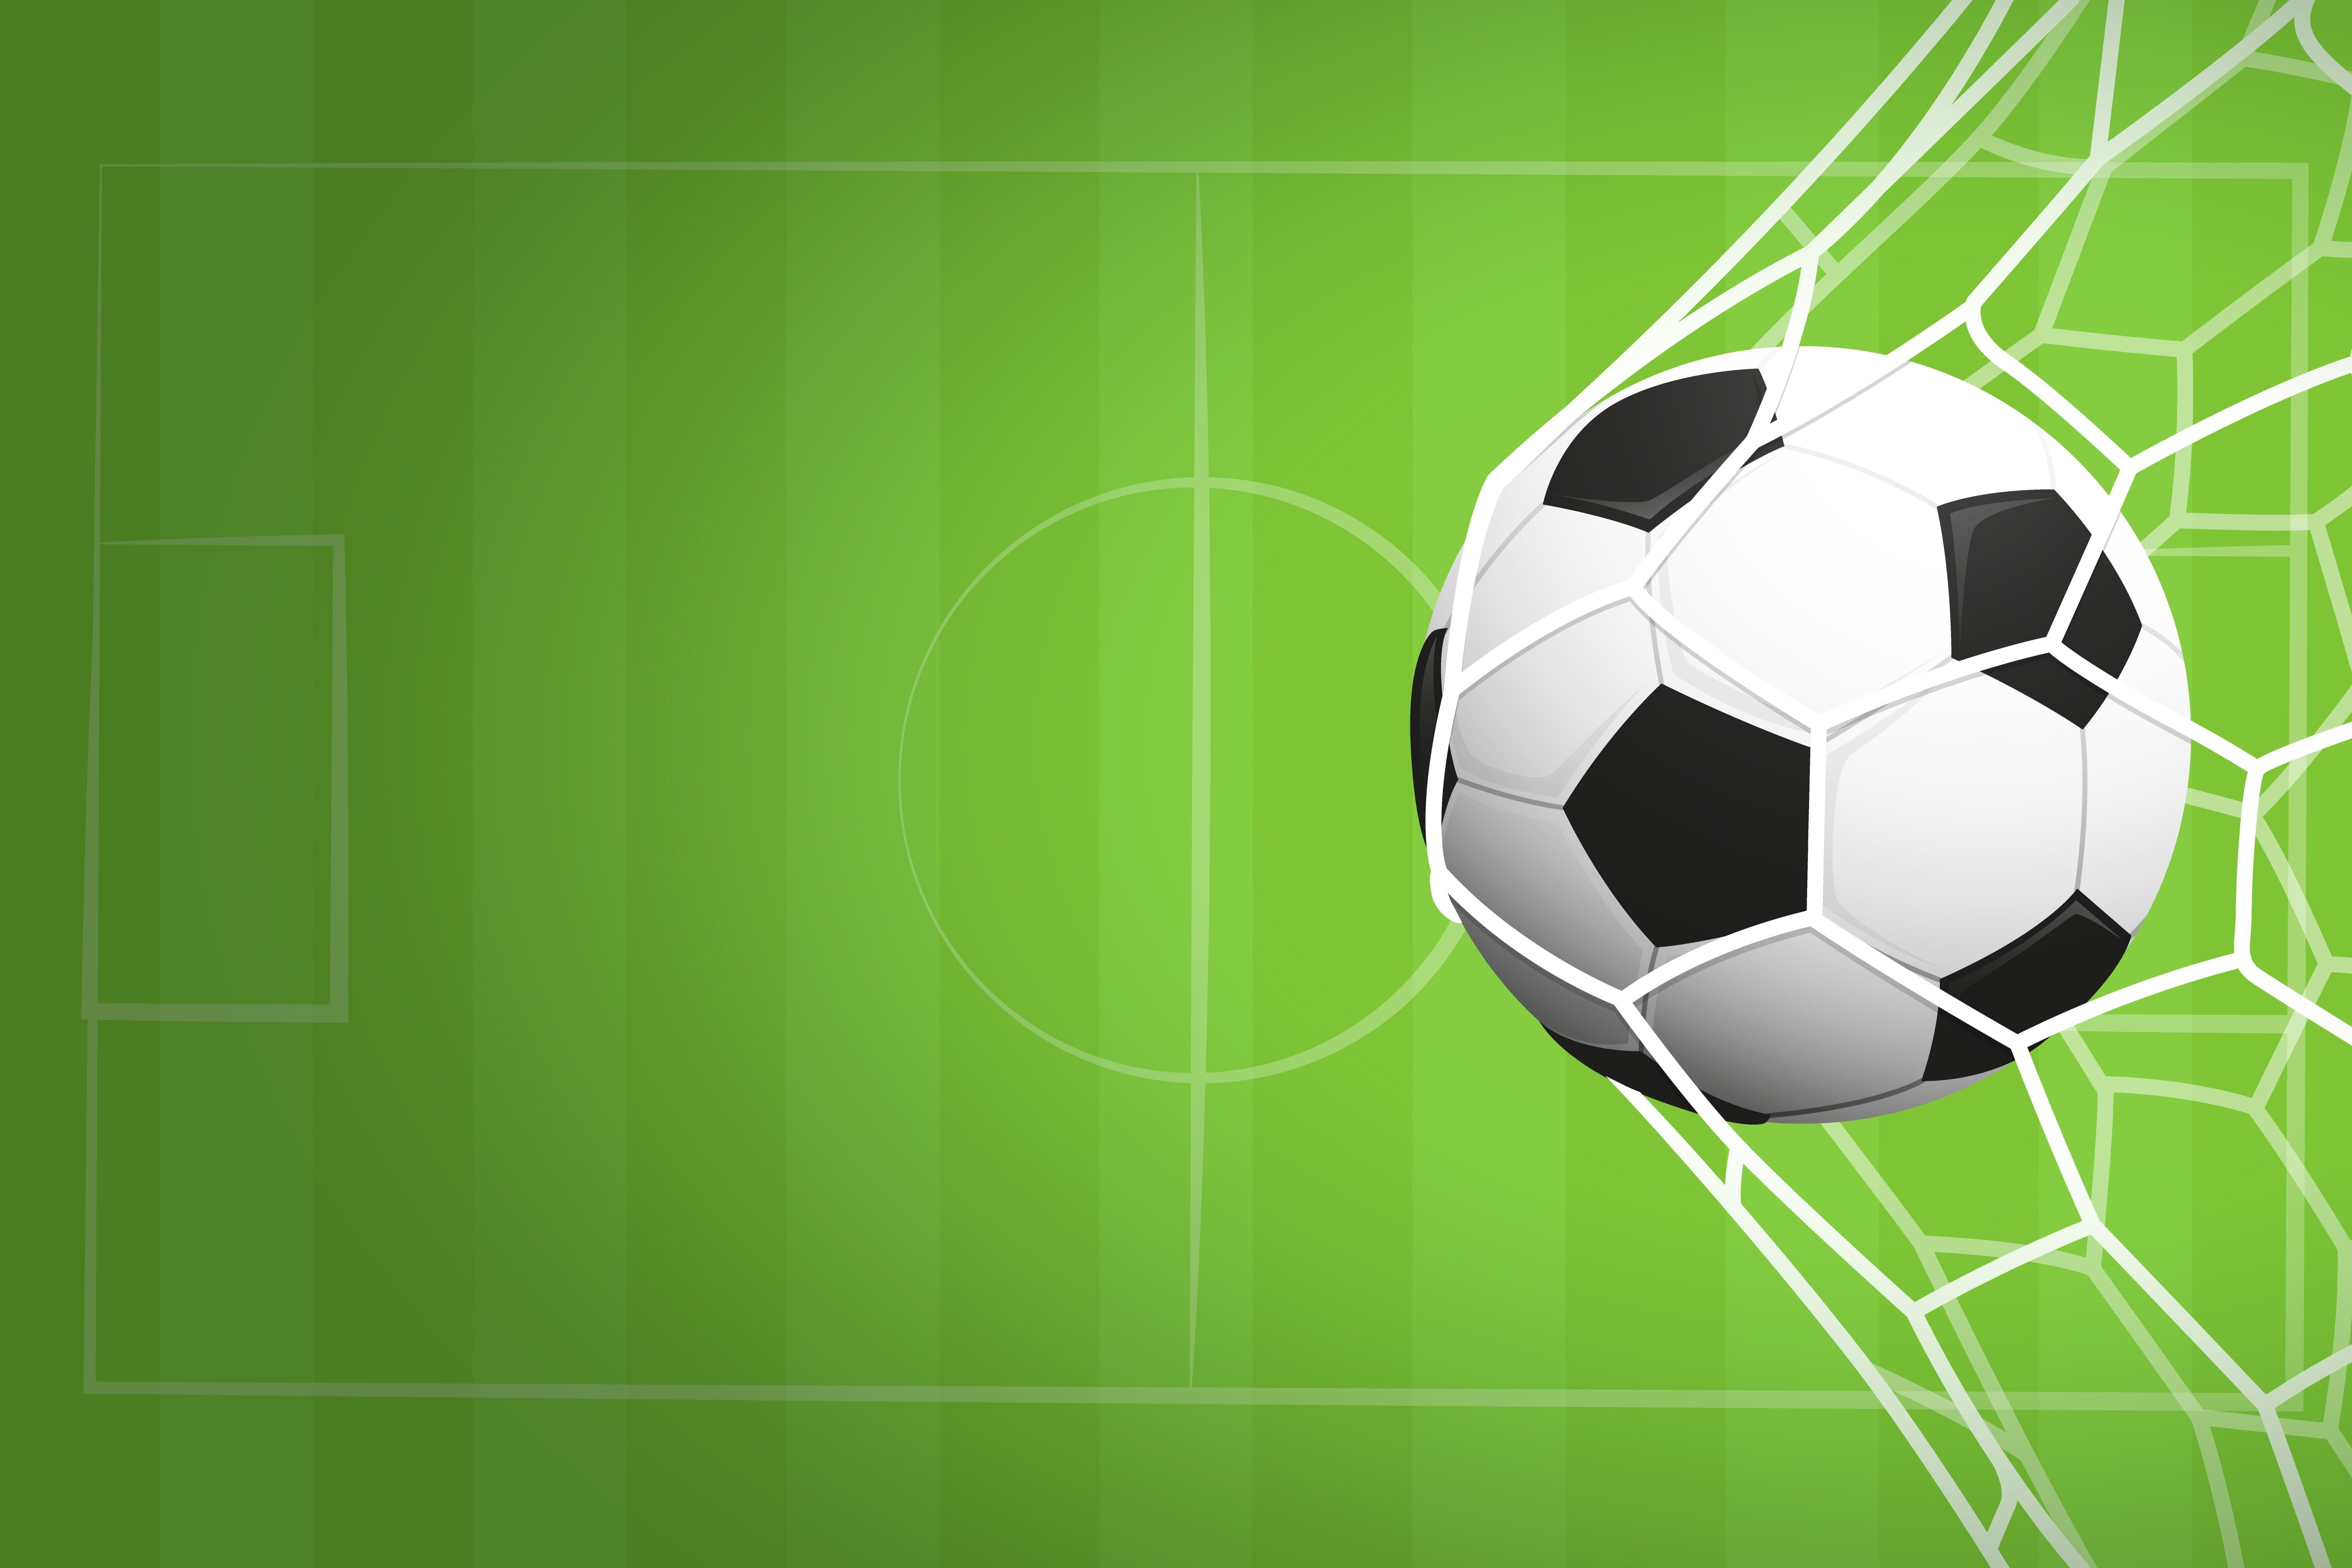 White And Black Soccer Ball Wallpaper Background Mesh Football Sport The Game The Ball Vector Gate Green Goal 5k Soccer Ball Soccer Soccer Backgrounds